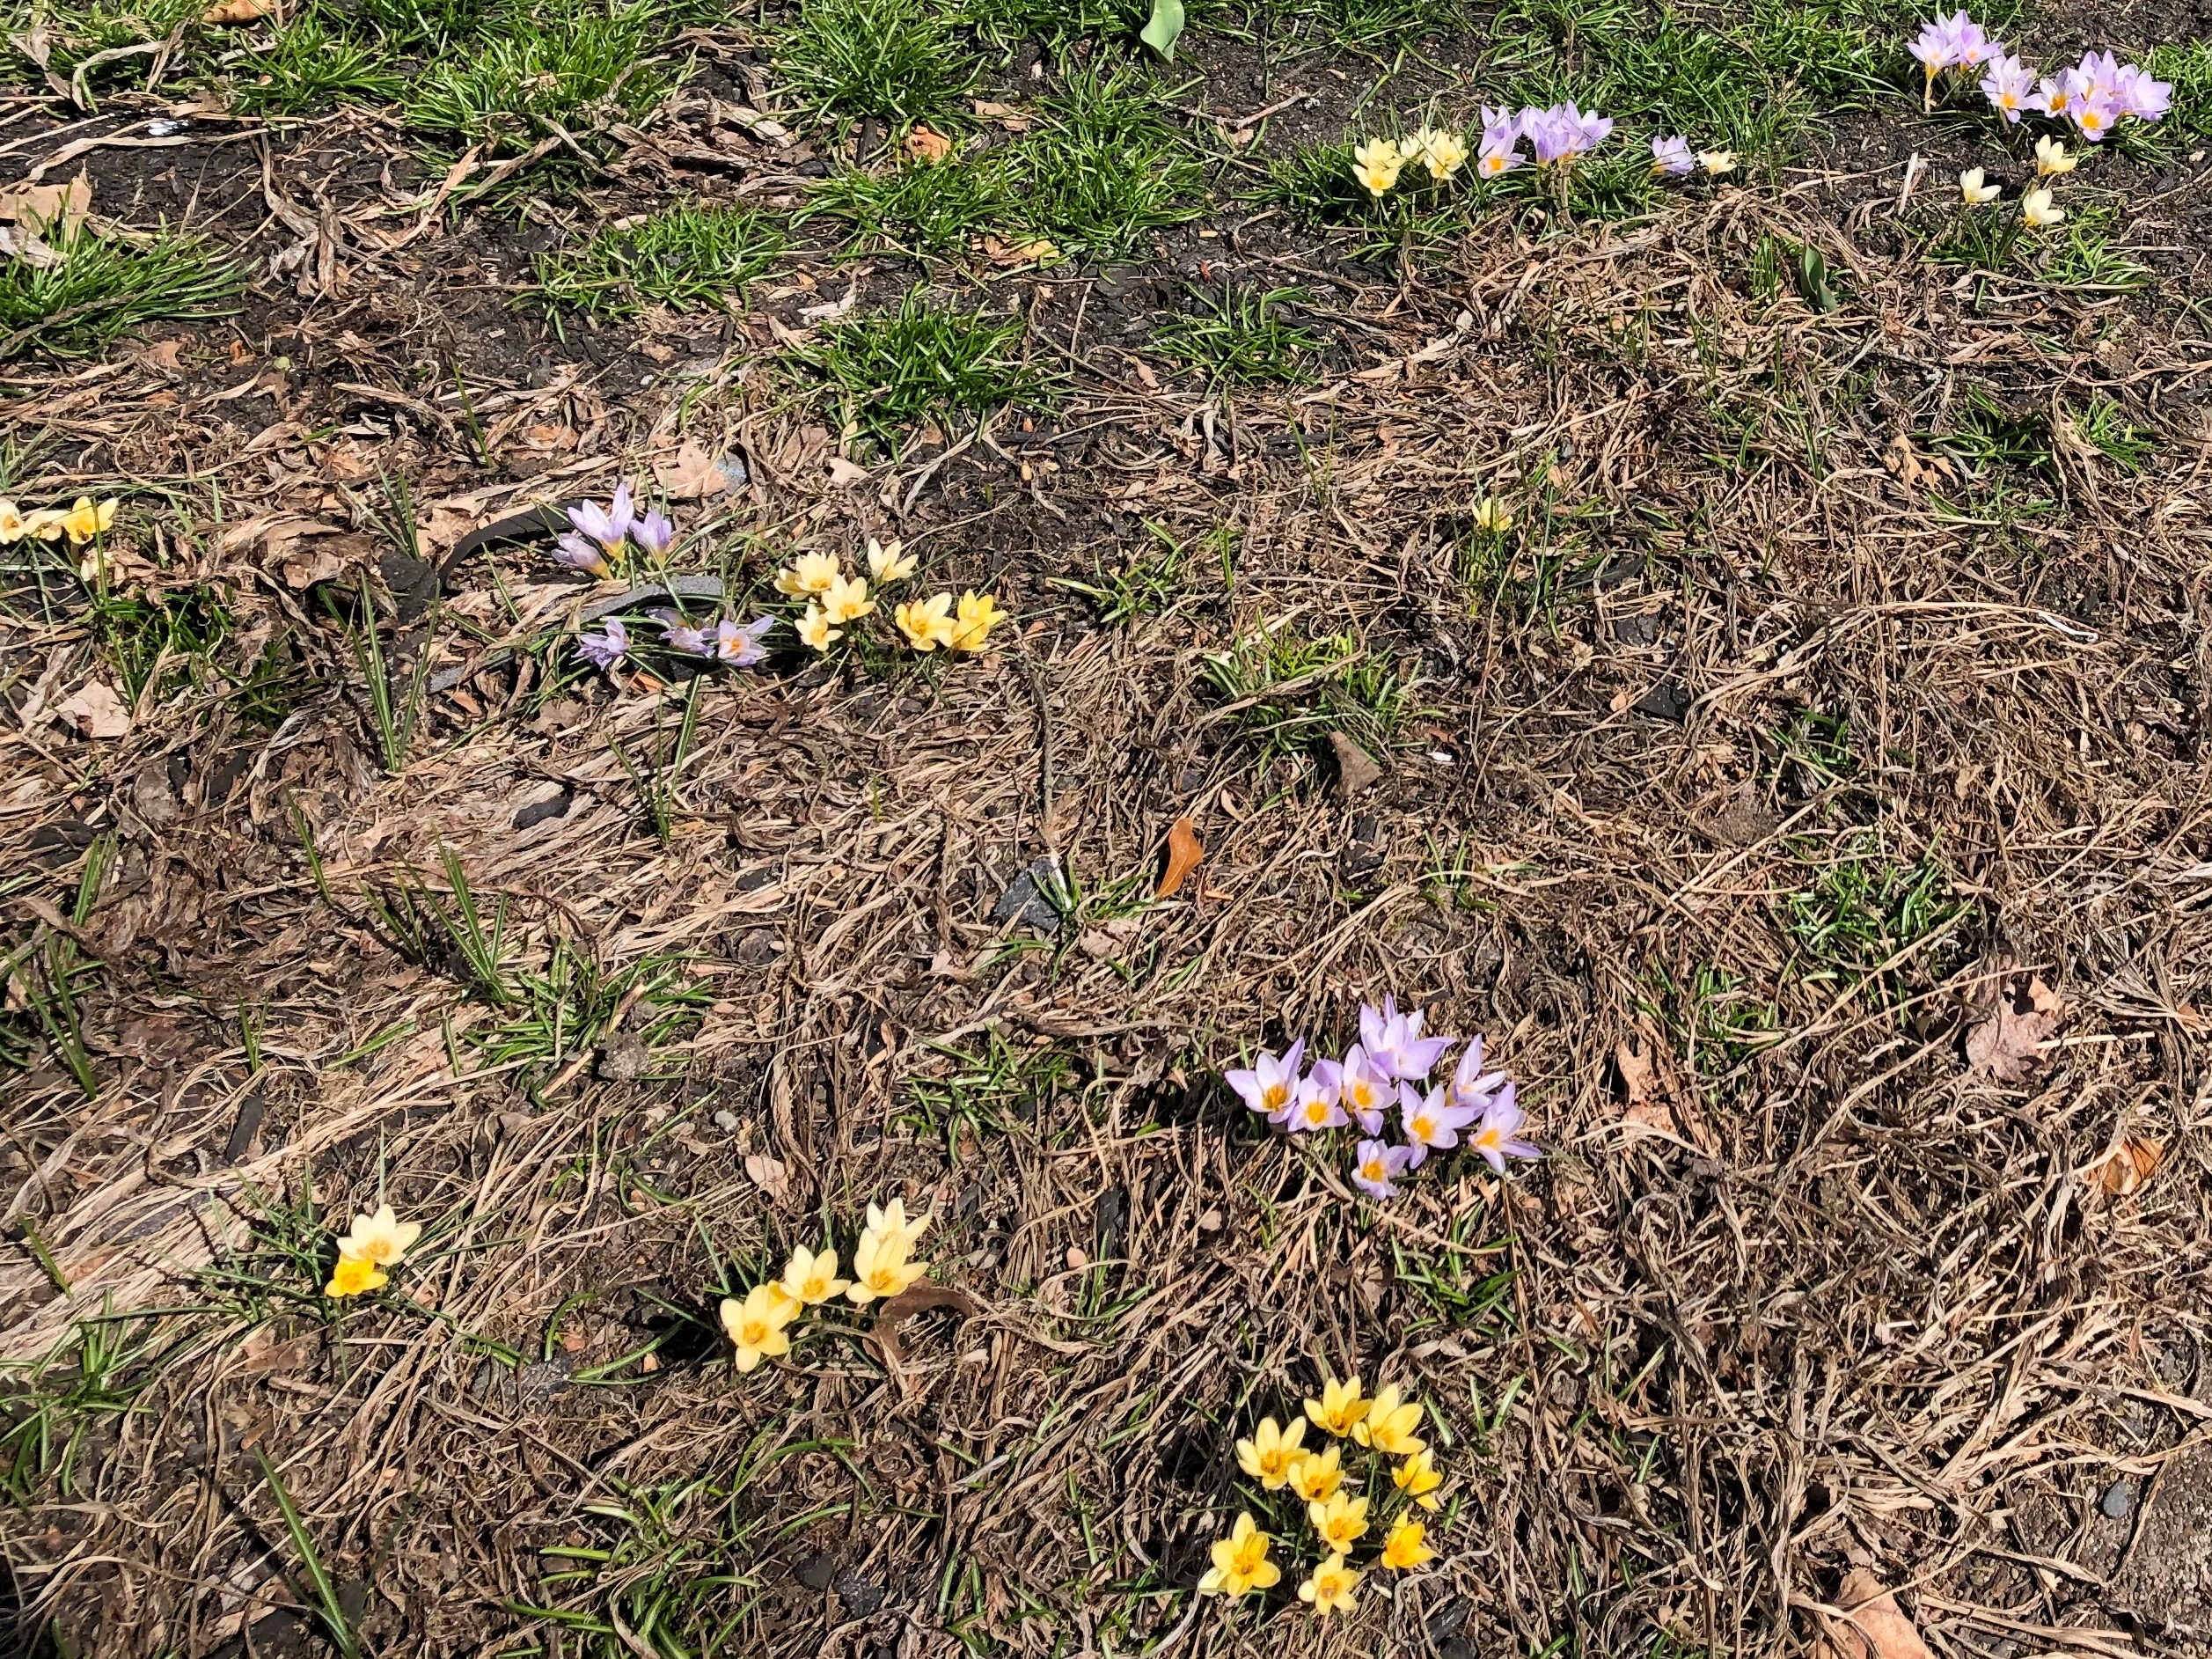 032019-early-sign-of-spring